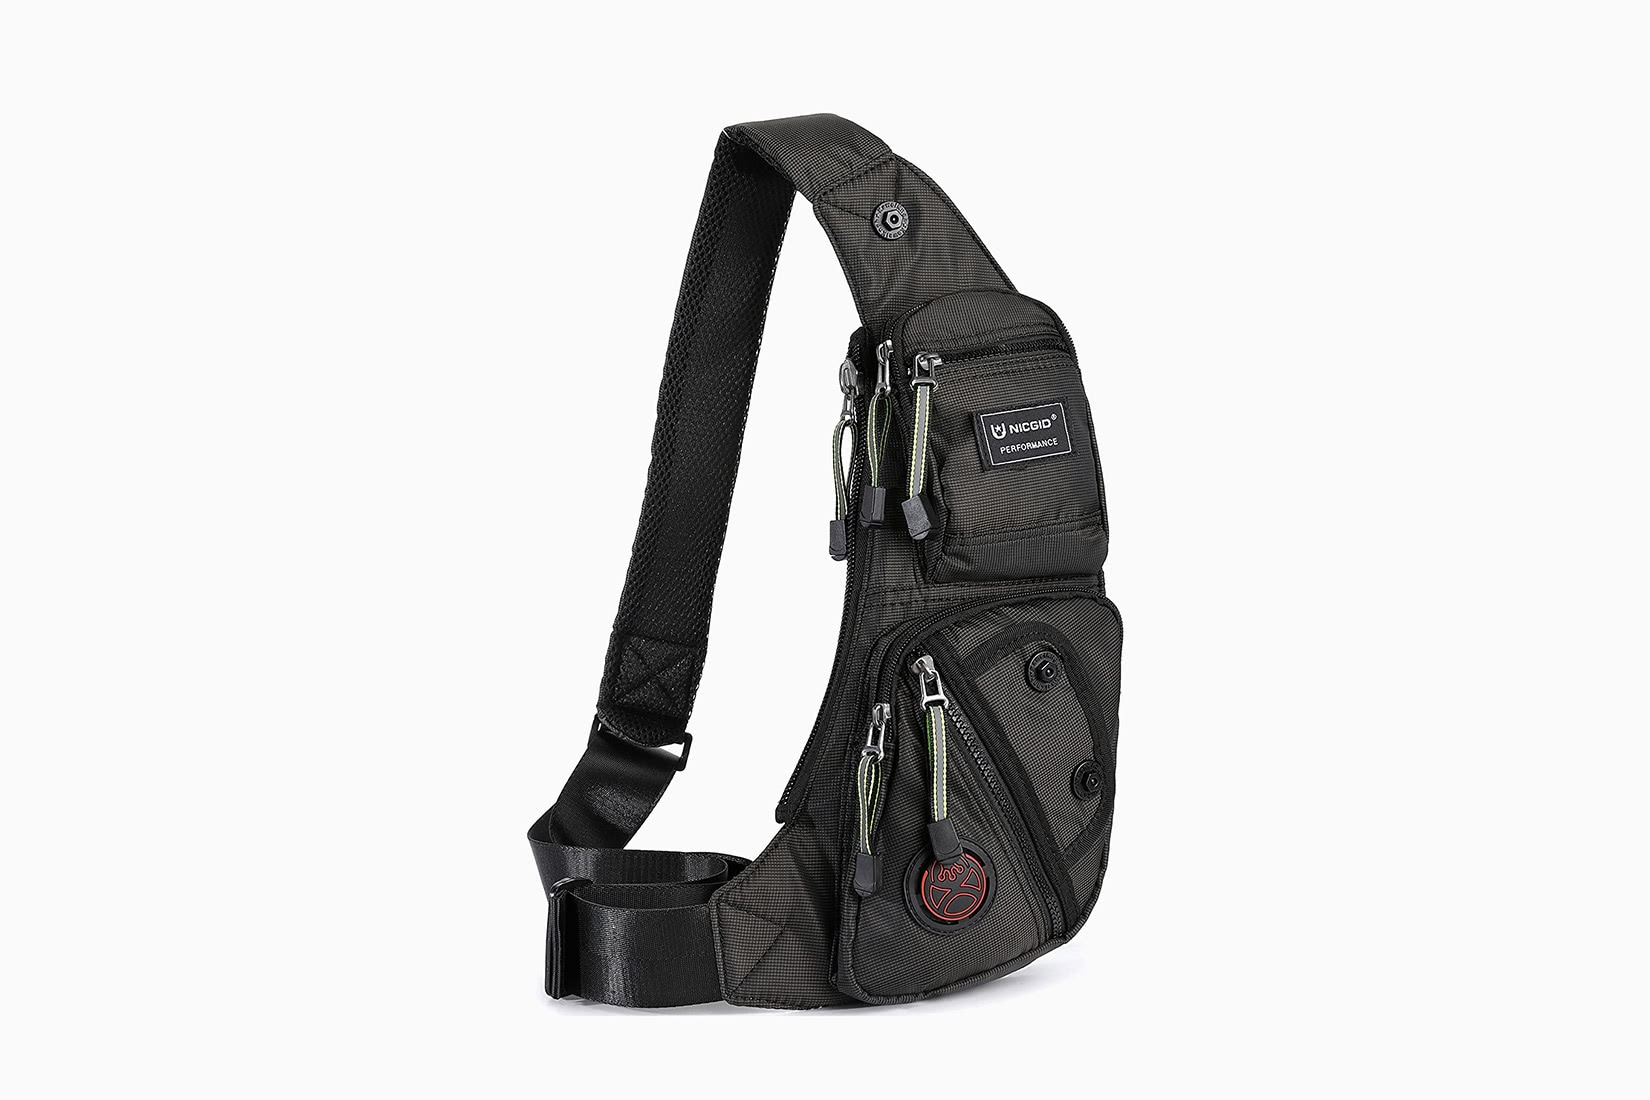 best sling bag nicgid - Luxe Digital